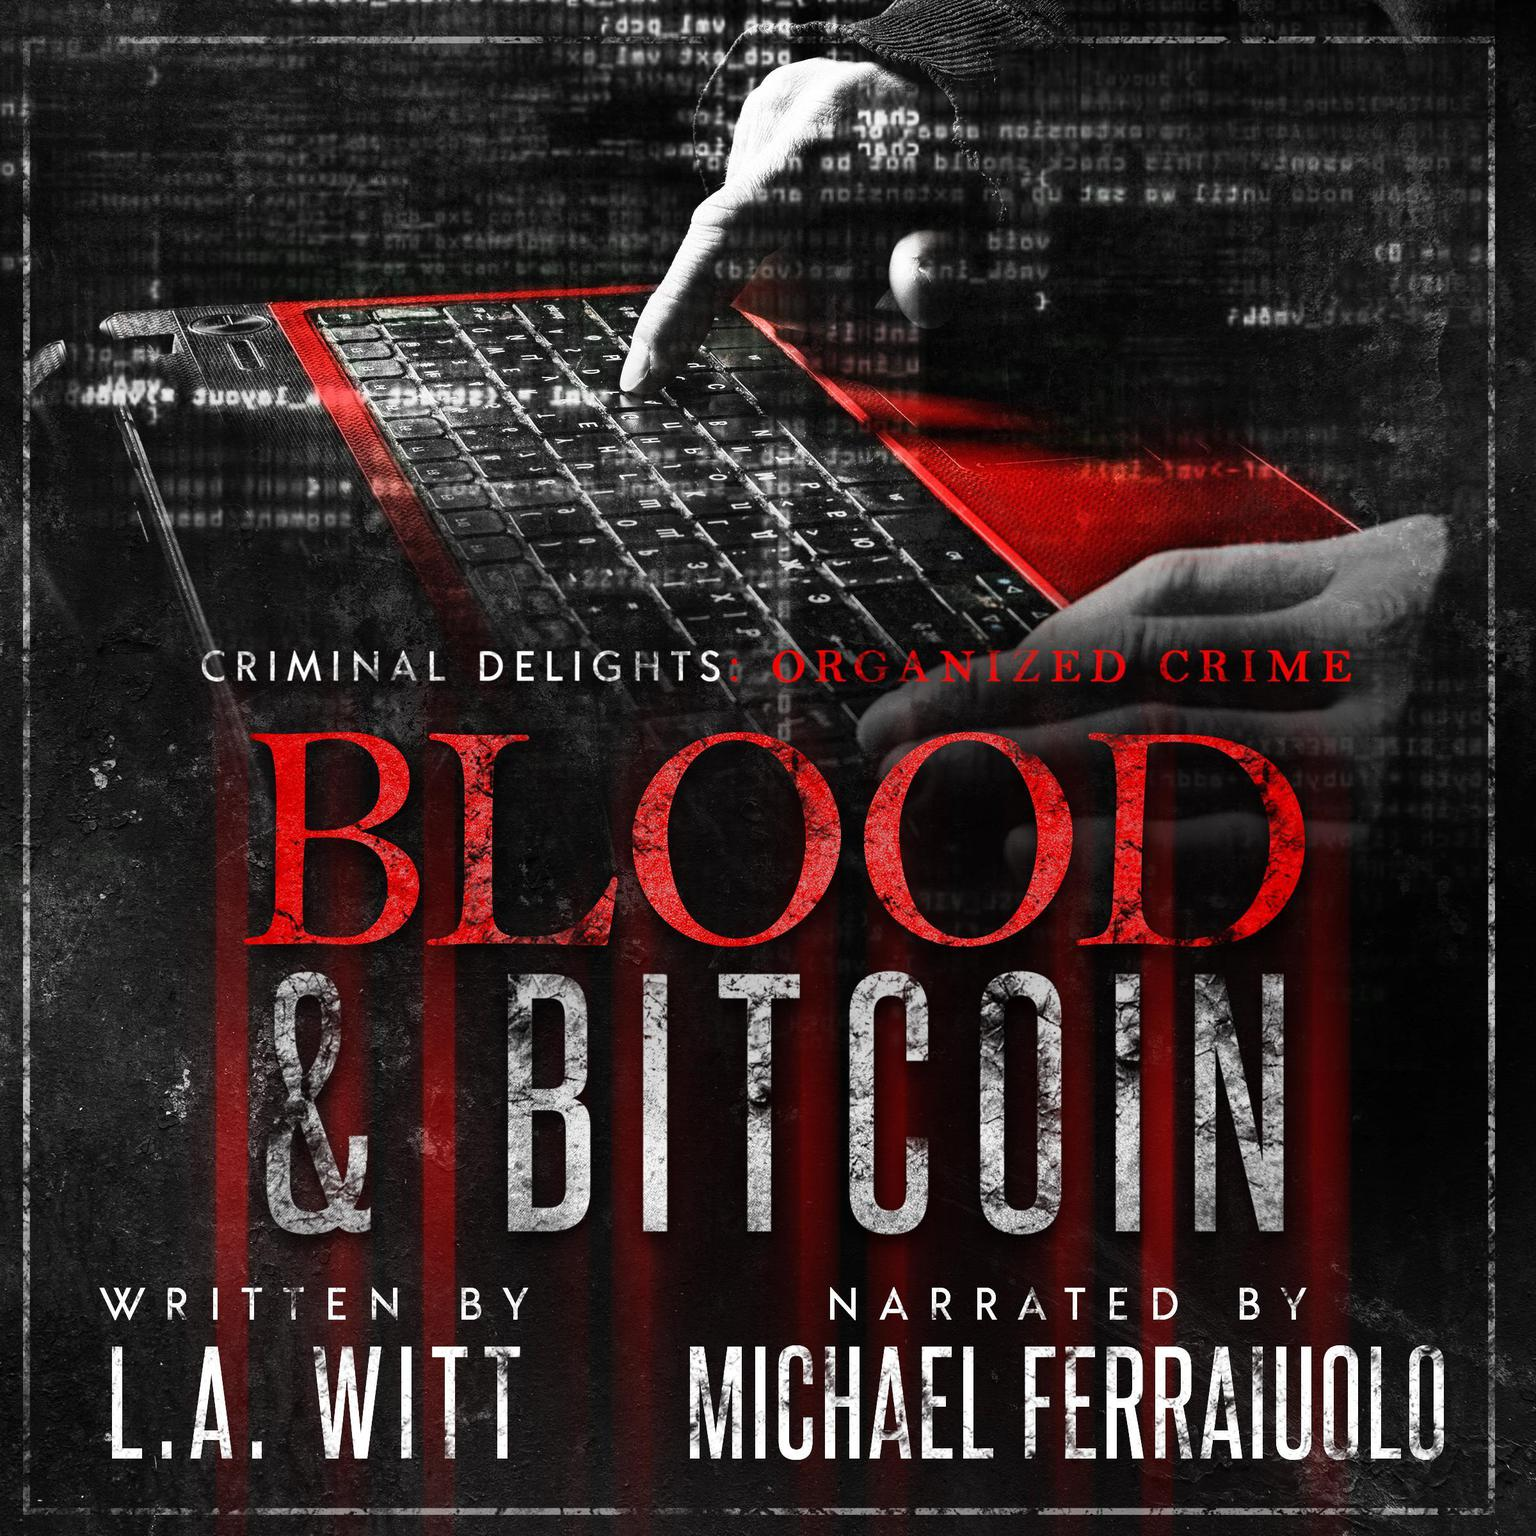 Blood & Bitcoin: Organized Crime Audiobook, by L.A. Witt